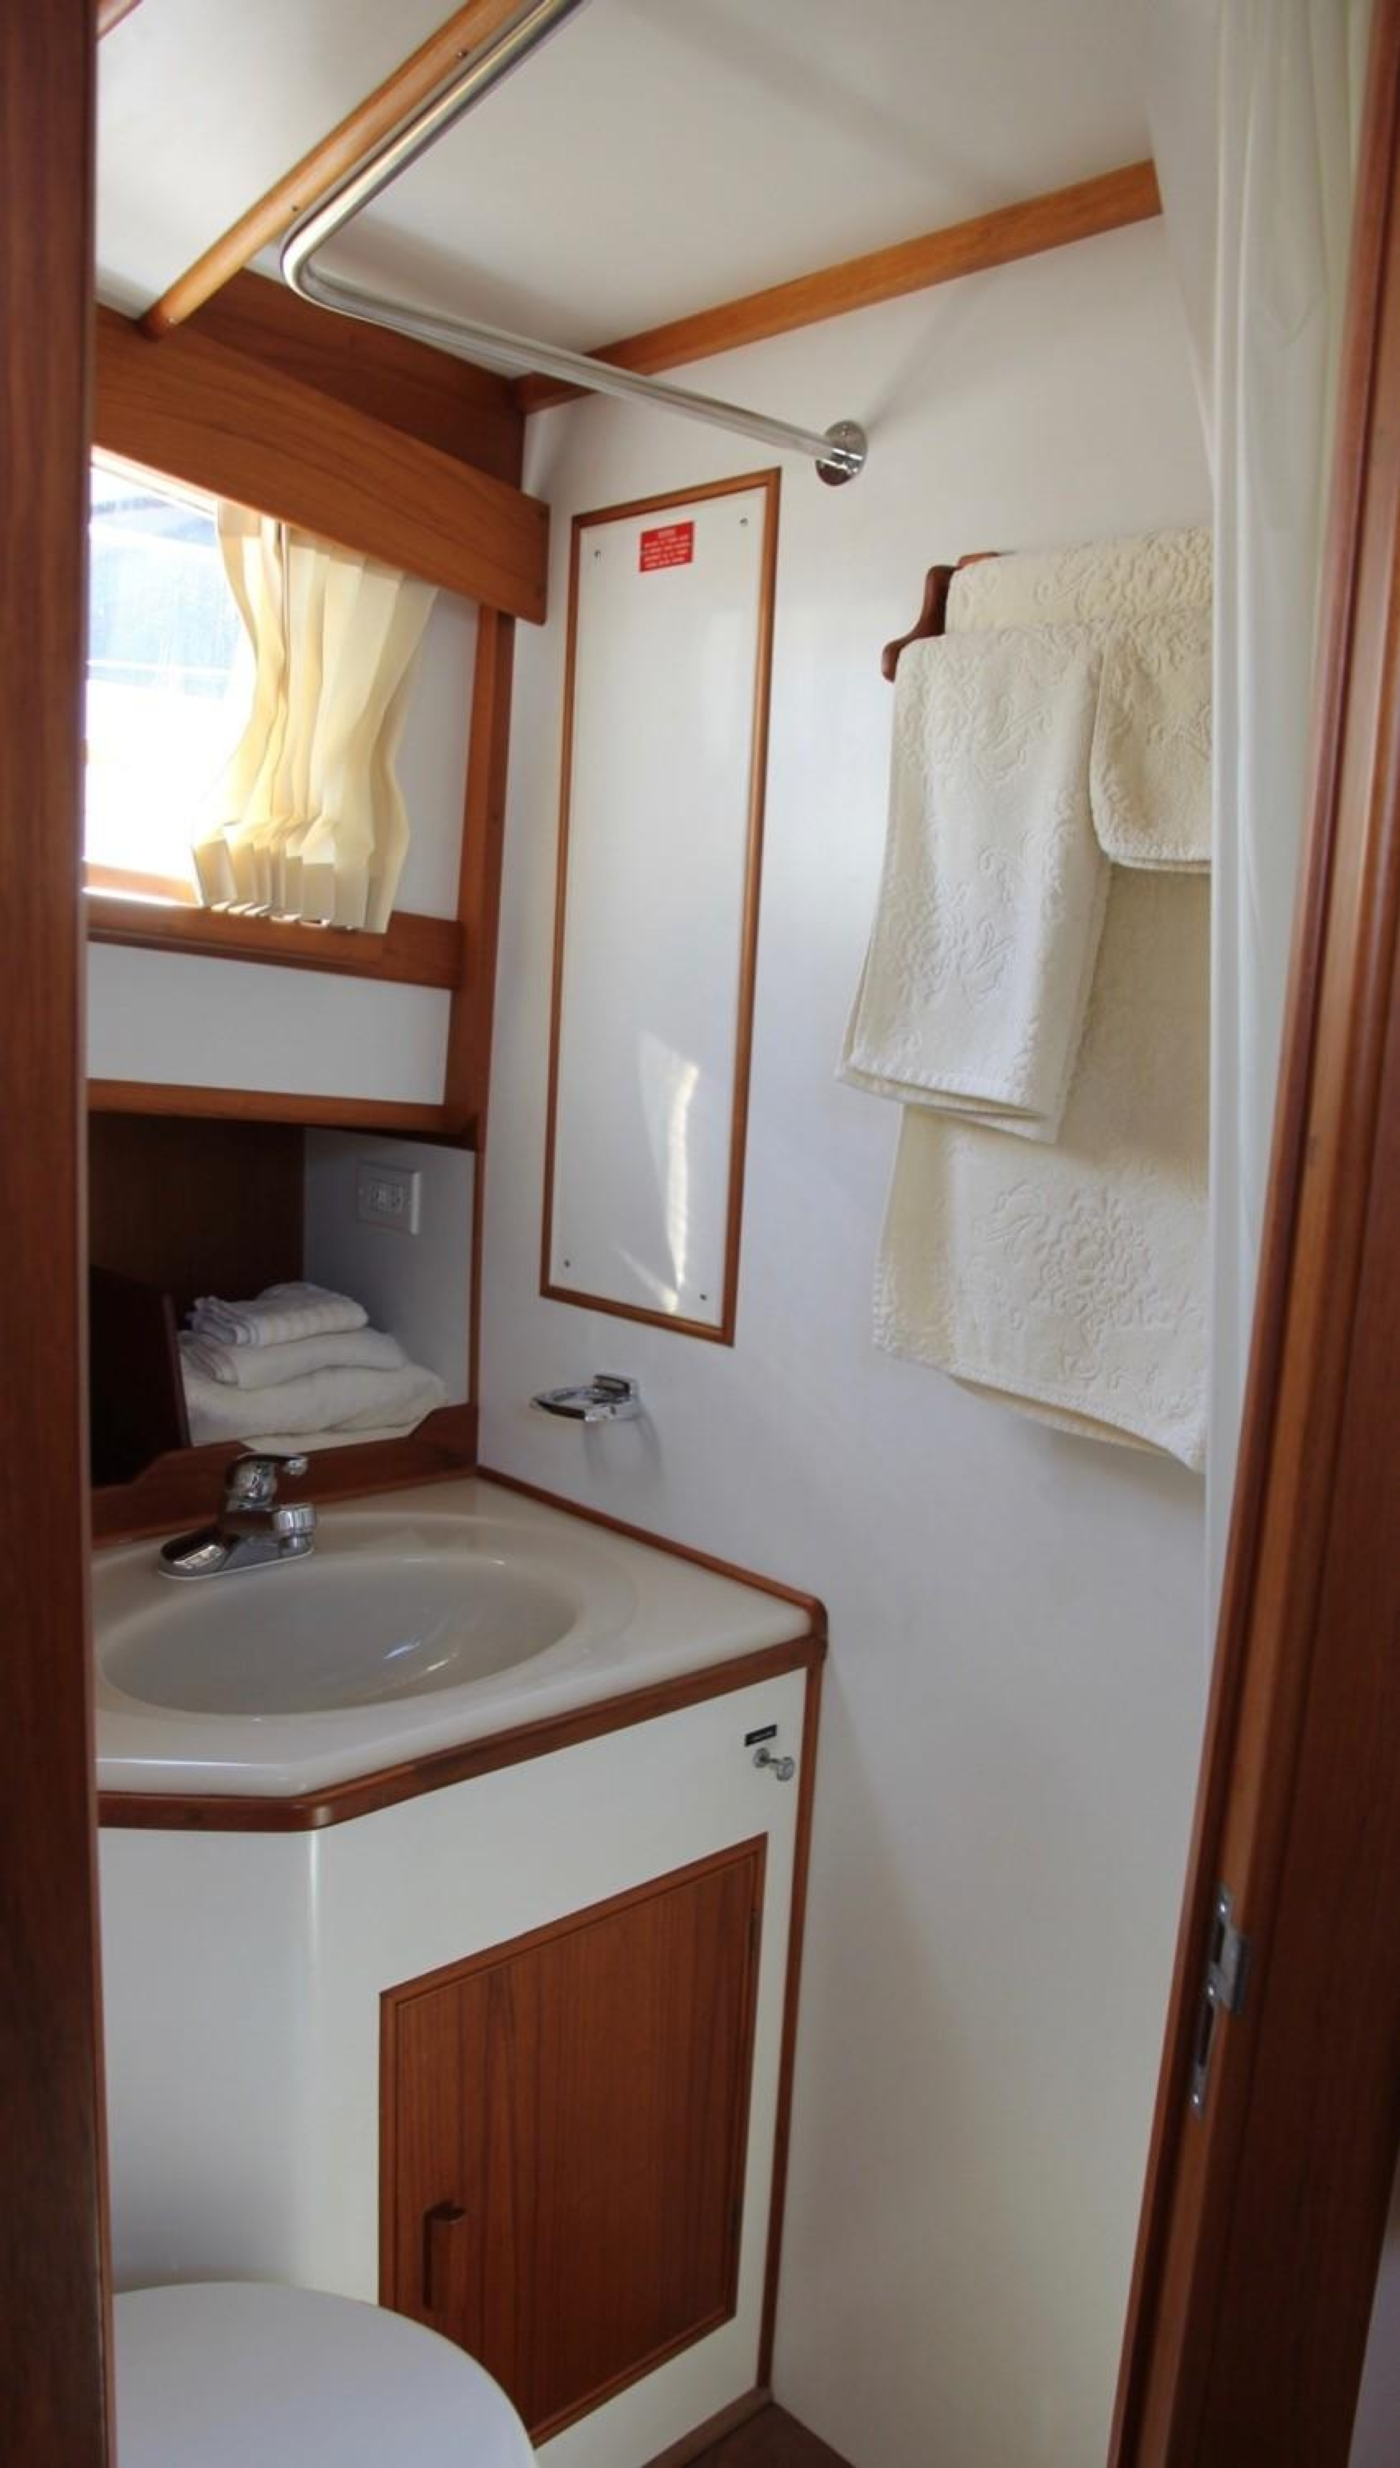 1995 Grand Banks Classic, Forward Ensuite